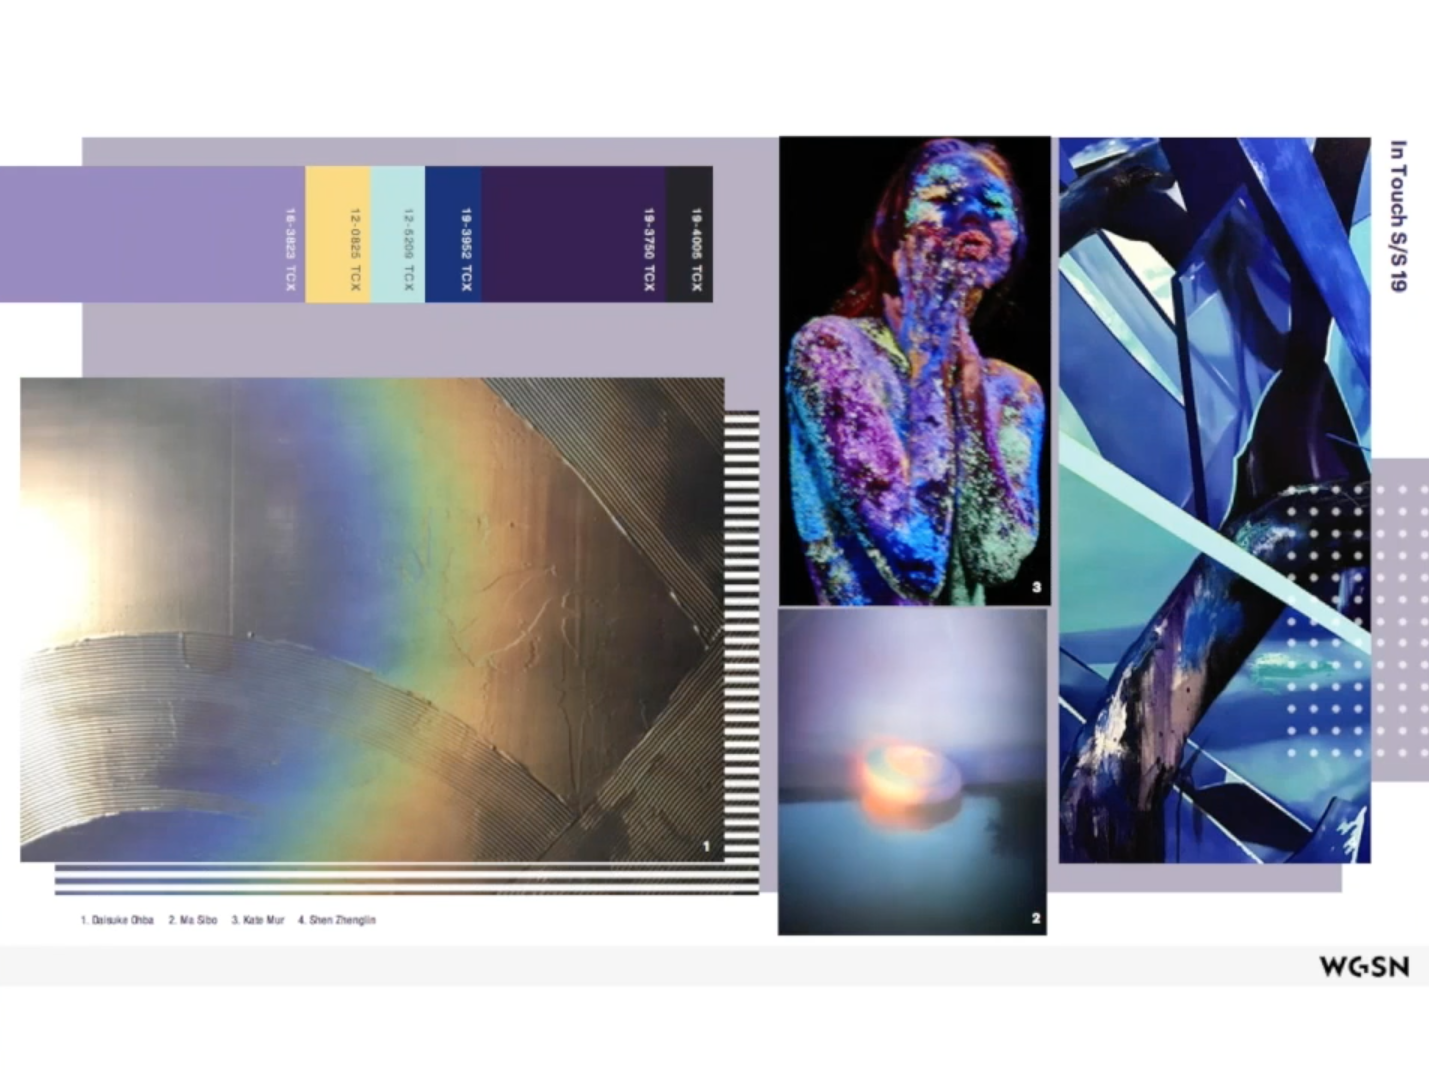 macro tendencias 2019 wgsn creative manifesto common ground in touch